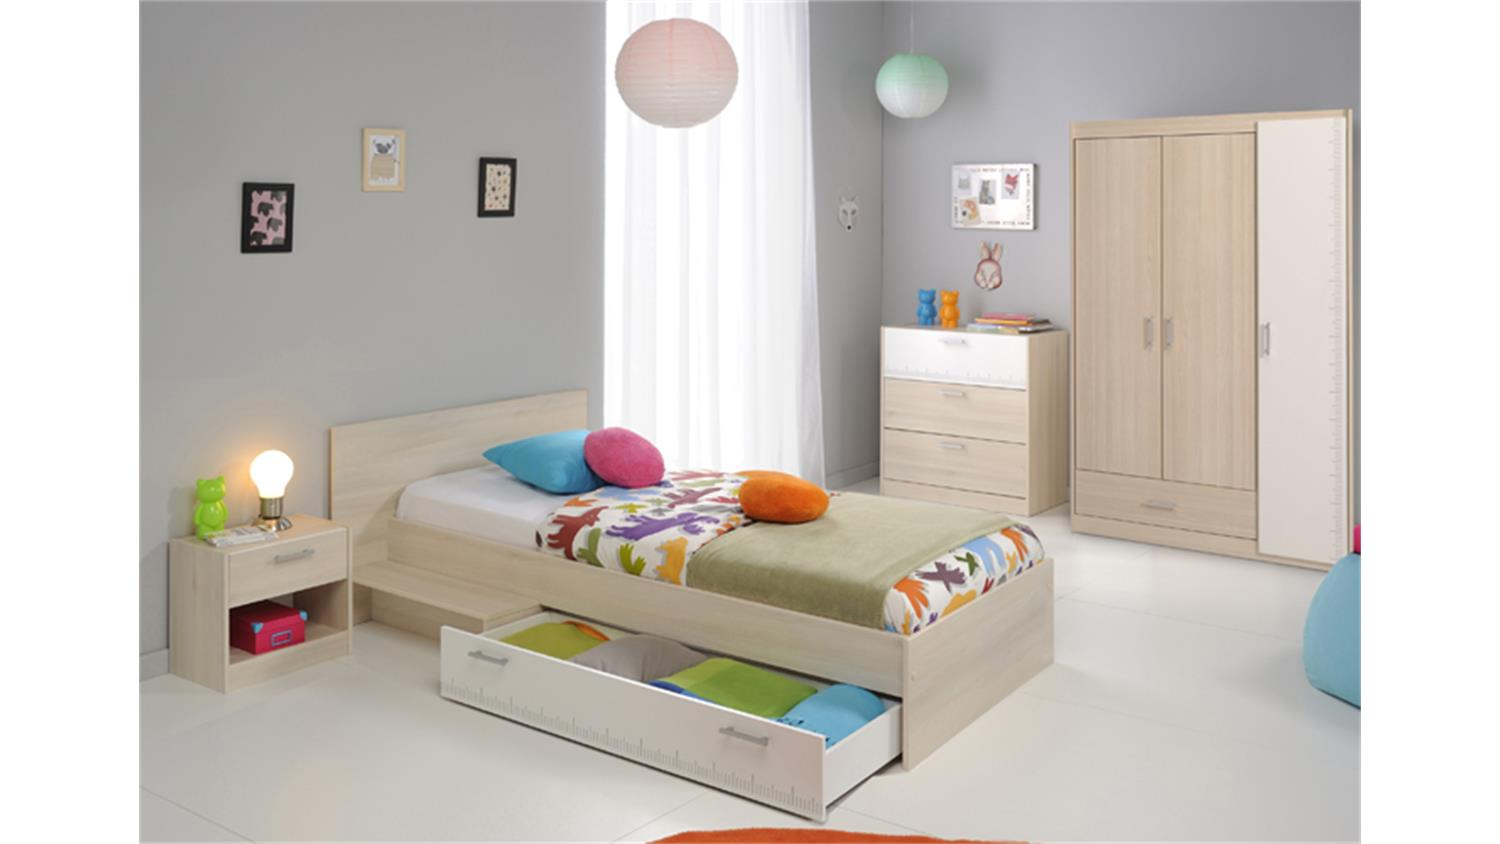 ideen kinderzimmer. Black Bedroom Furniture Sets. Home Design Ideas